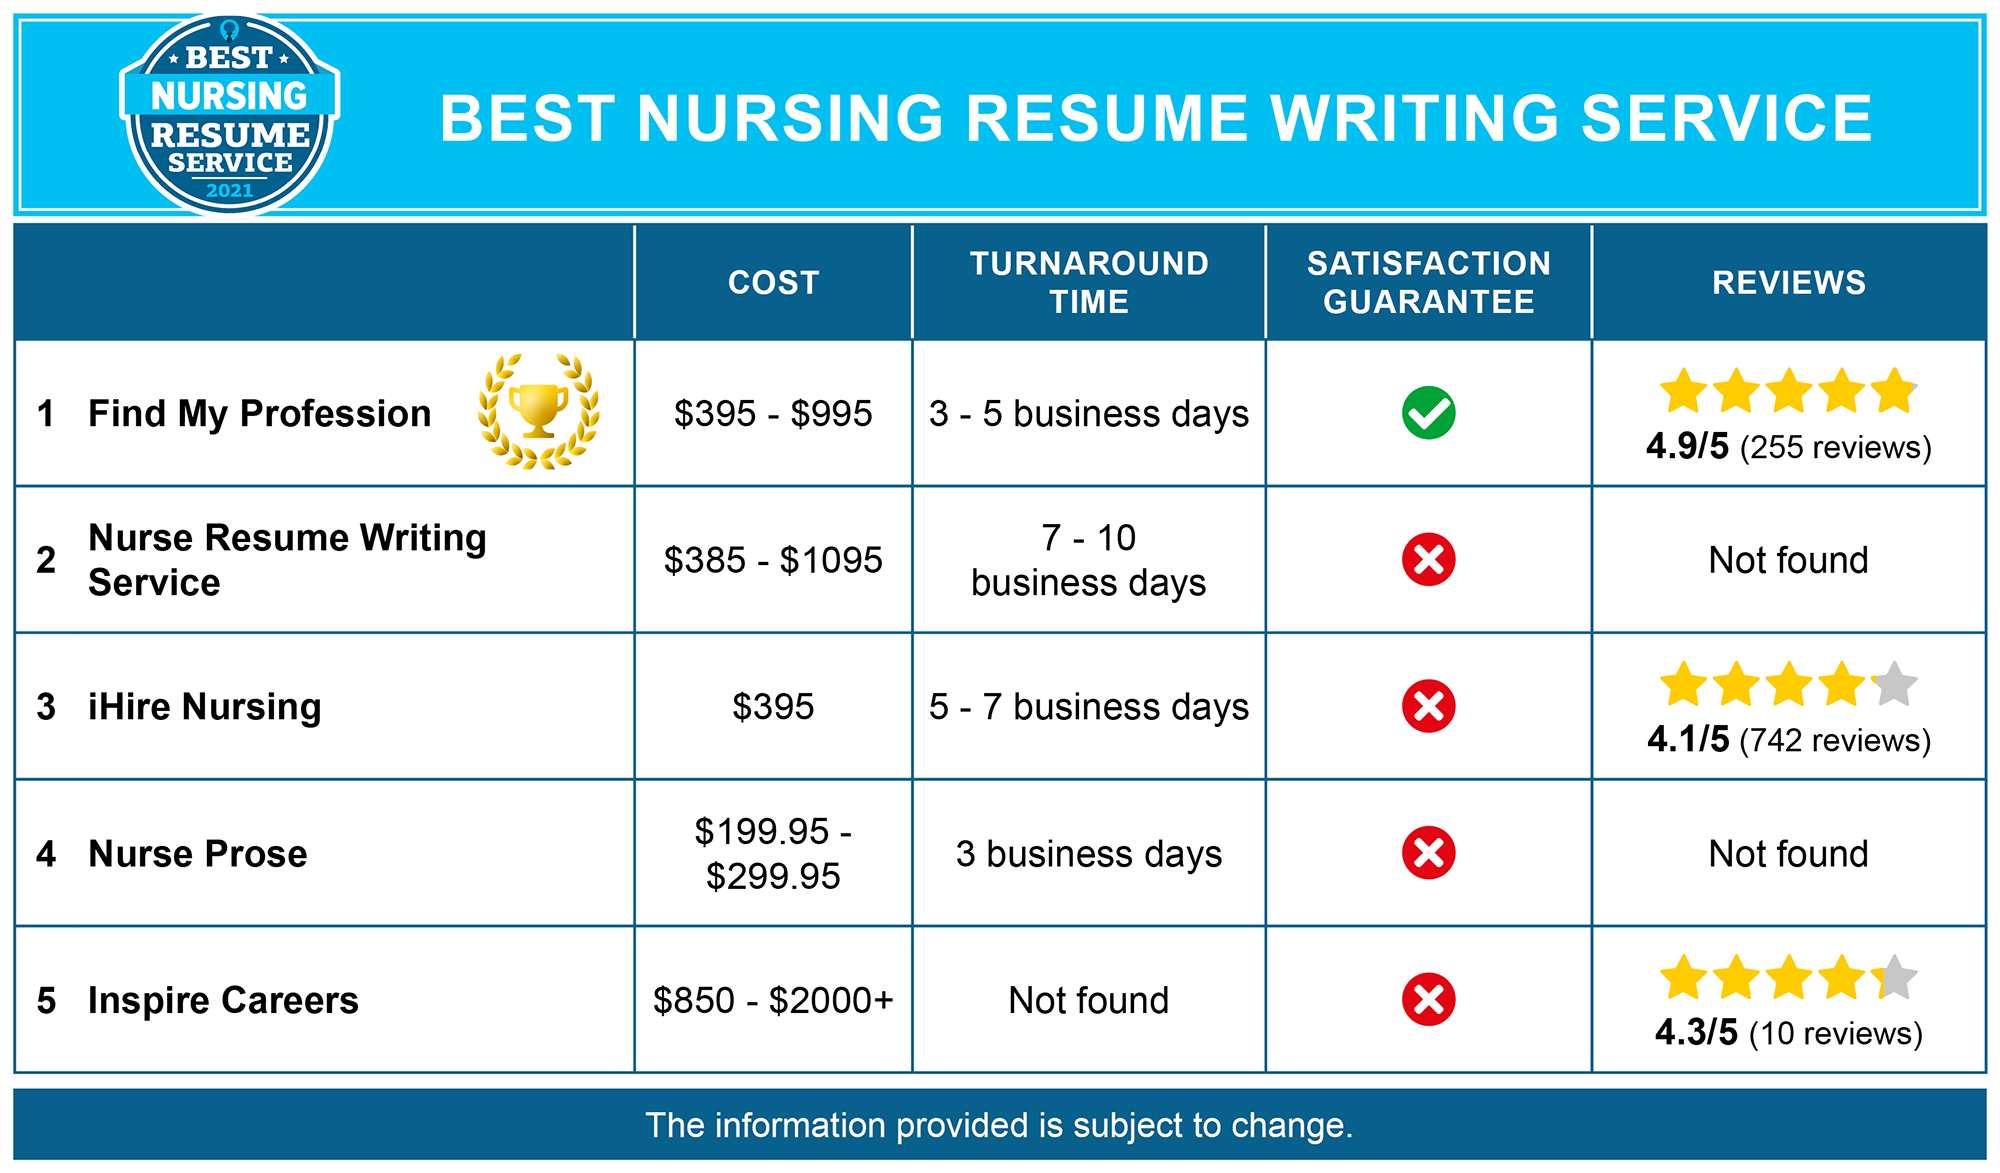 Best Nursing Resume Services